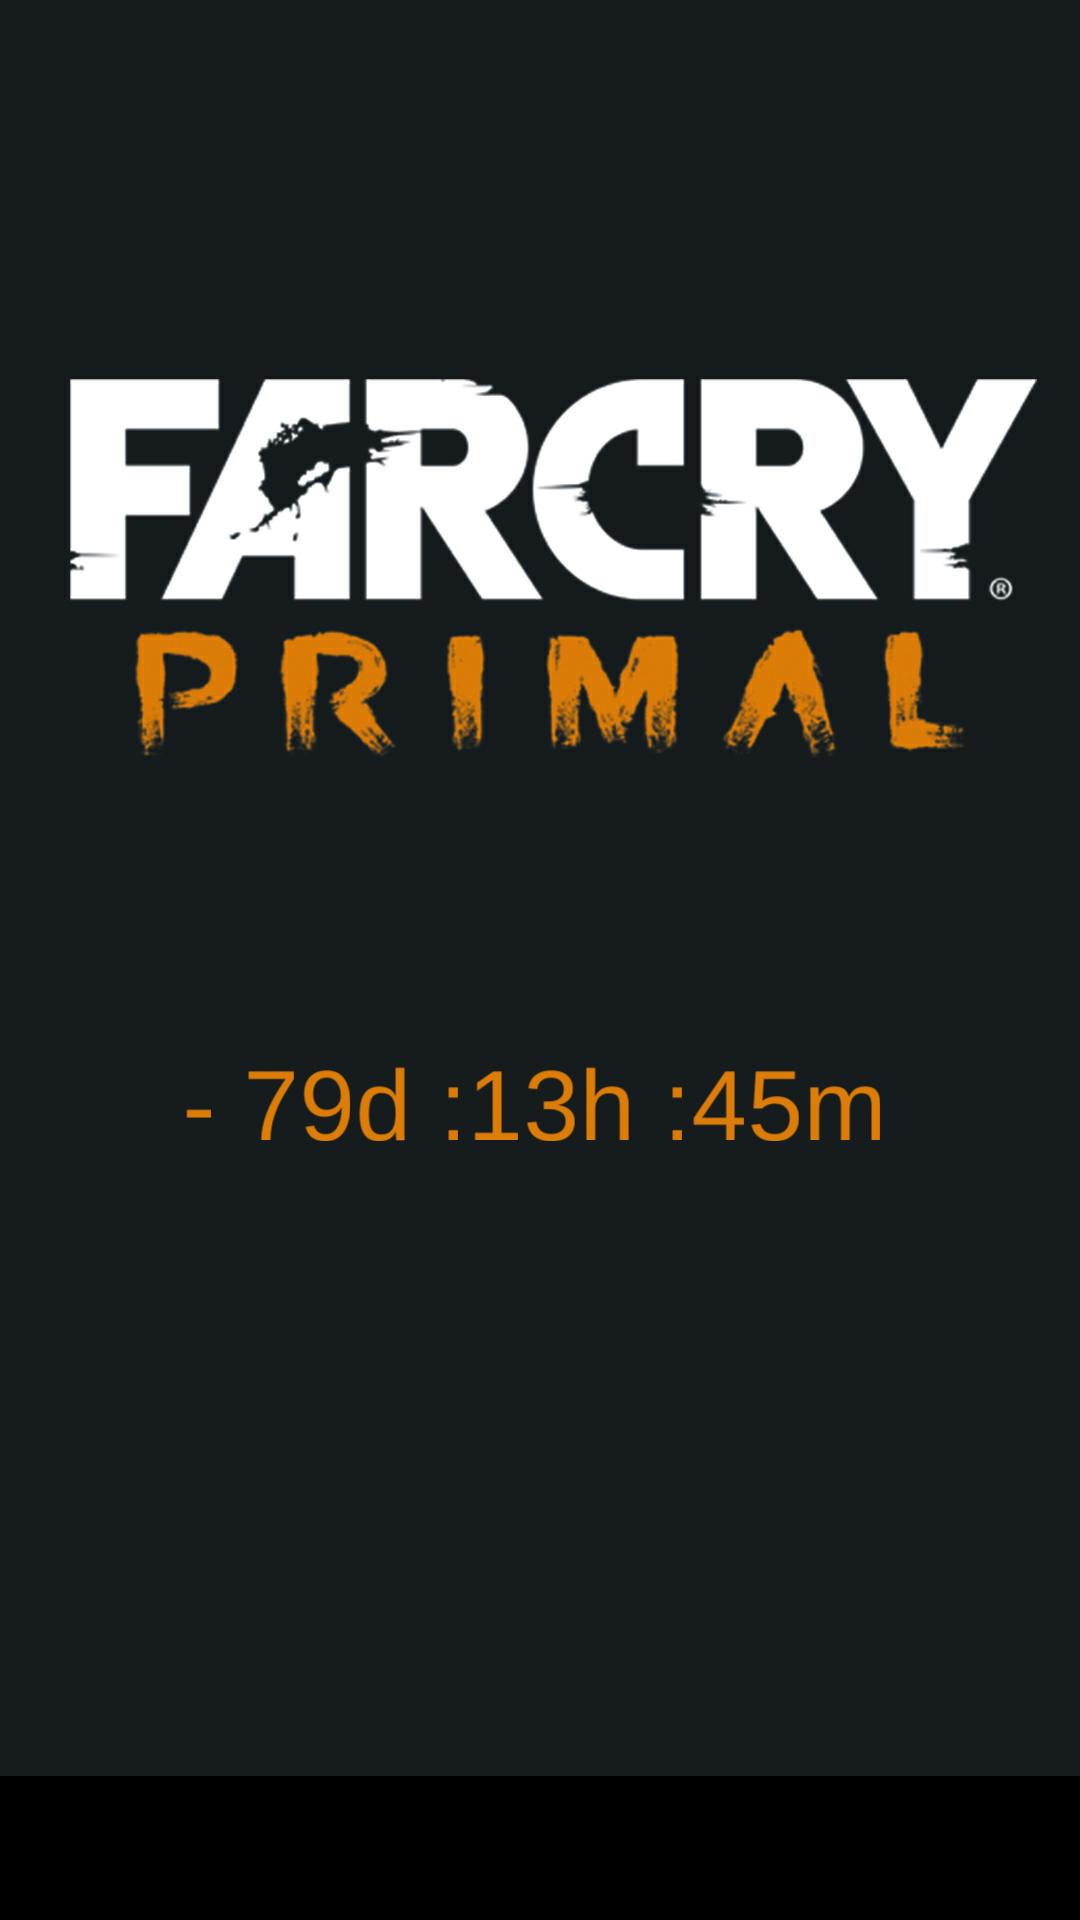 Countdown - Far Cry Primal for Android - APK Download